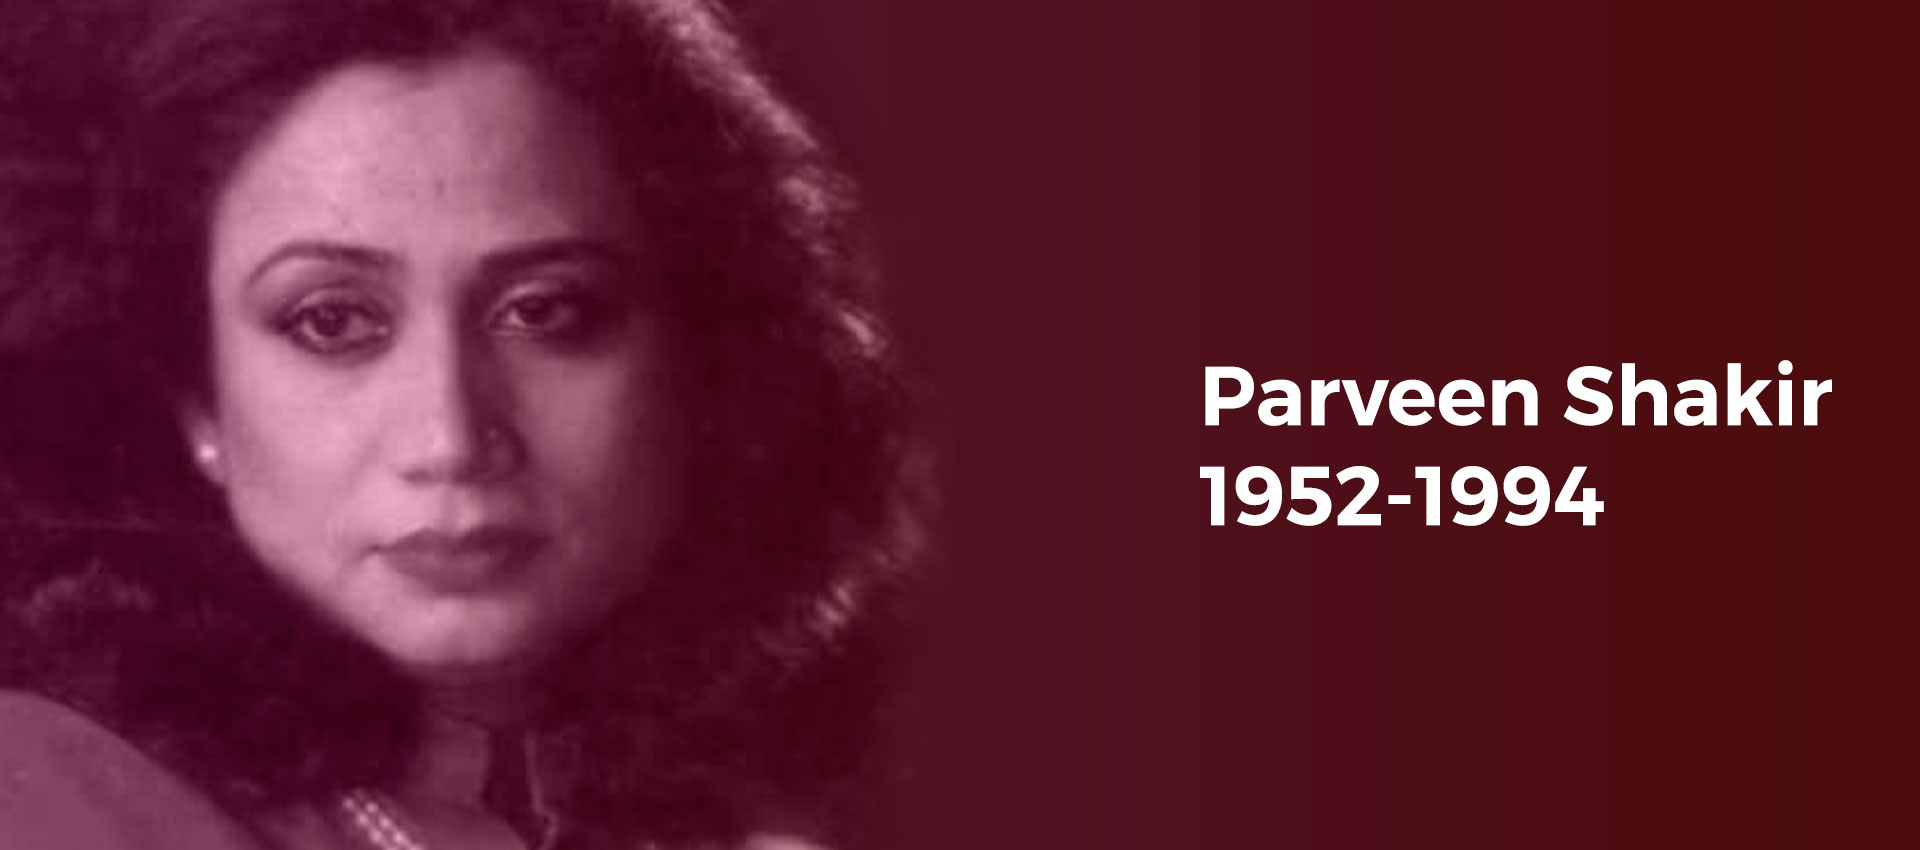 Parveen Shakir - The famous name in the Urdu Literature